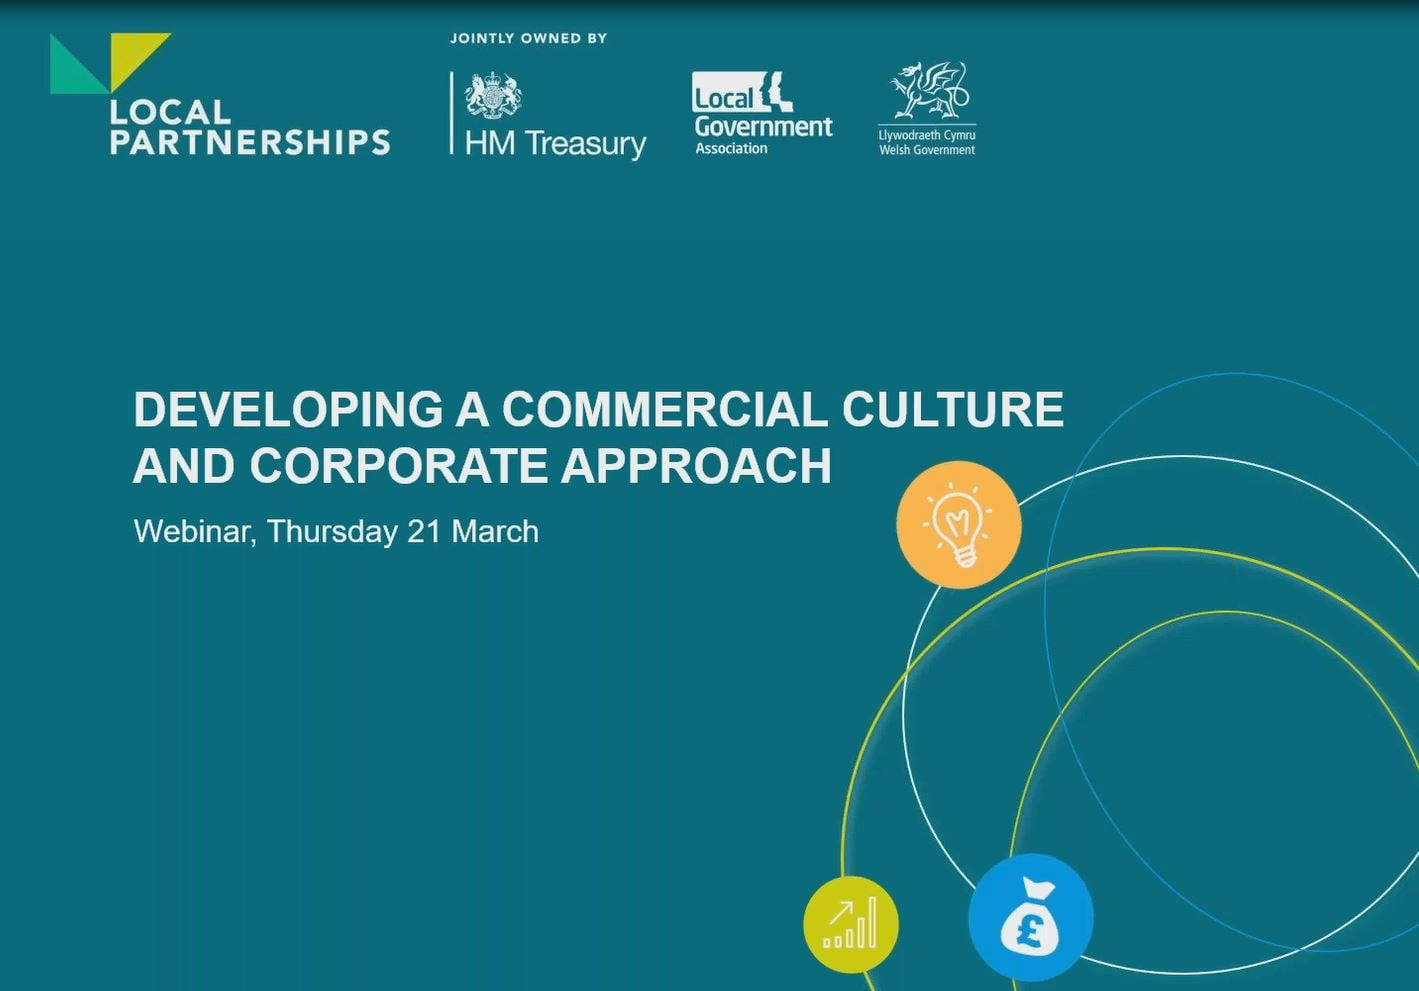 WEBINAR: Developing a commercial culture and corporate approach